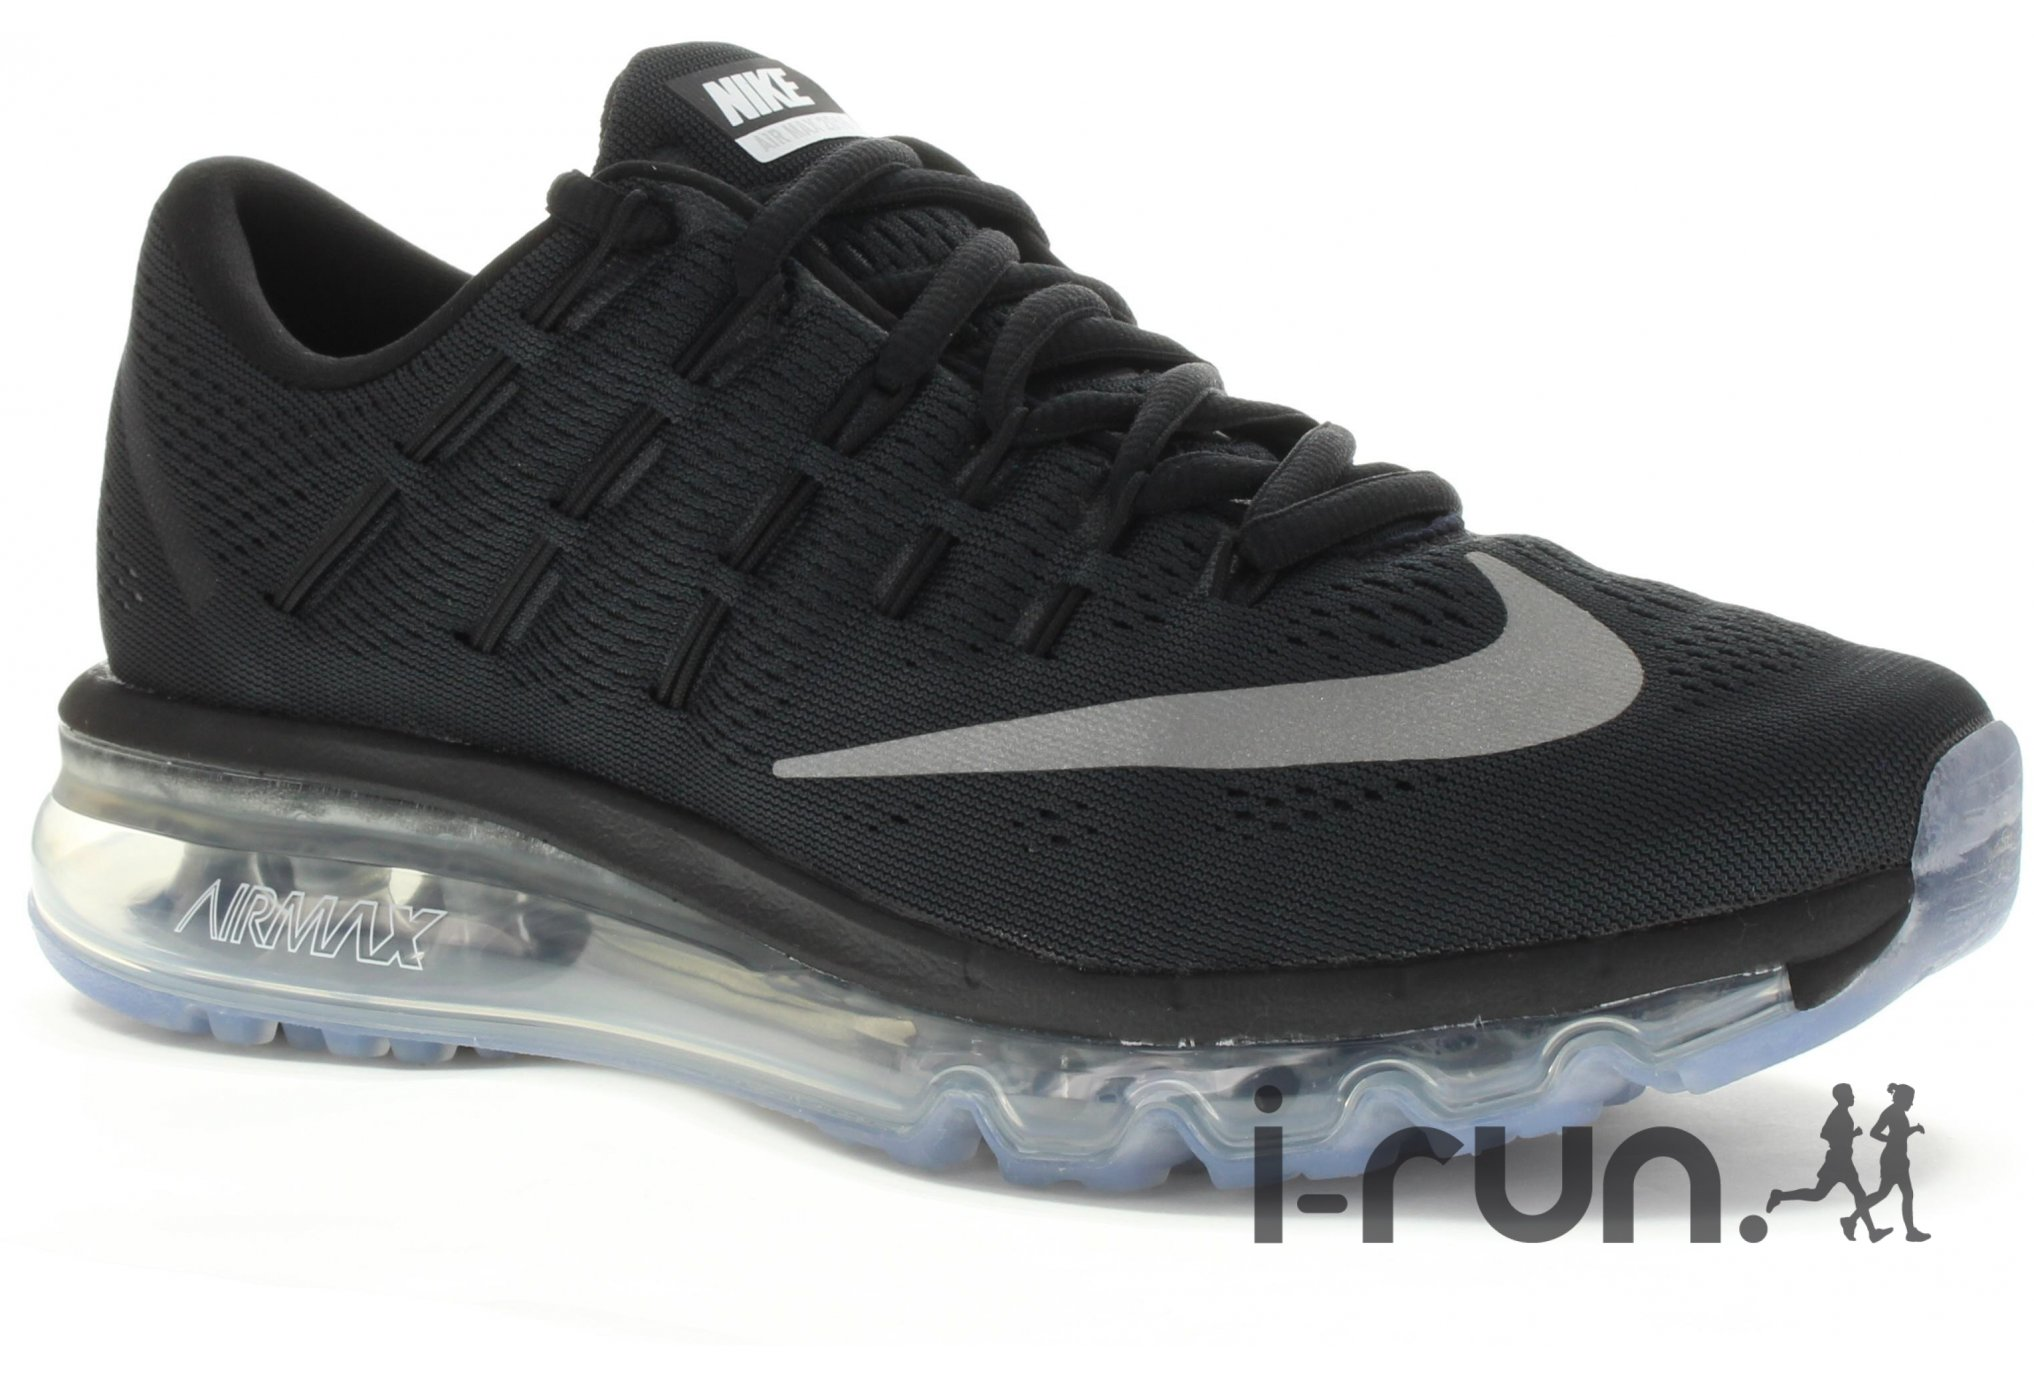 nike air max 2016 w pas cher avis prix et test. Black Bedroom Furniture Sets. Home Design Ideas